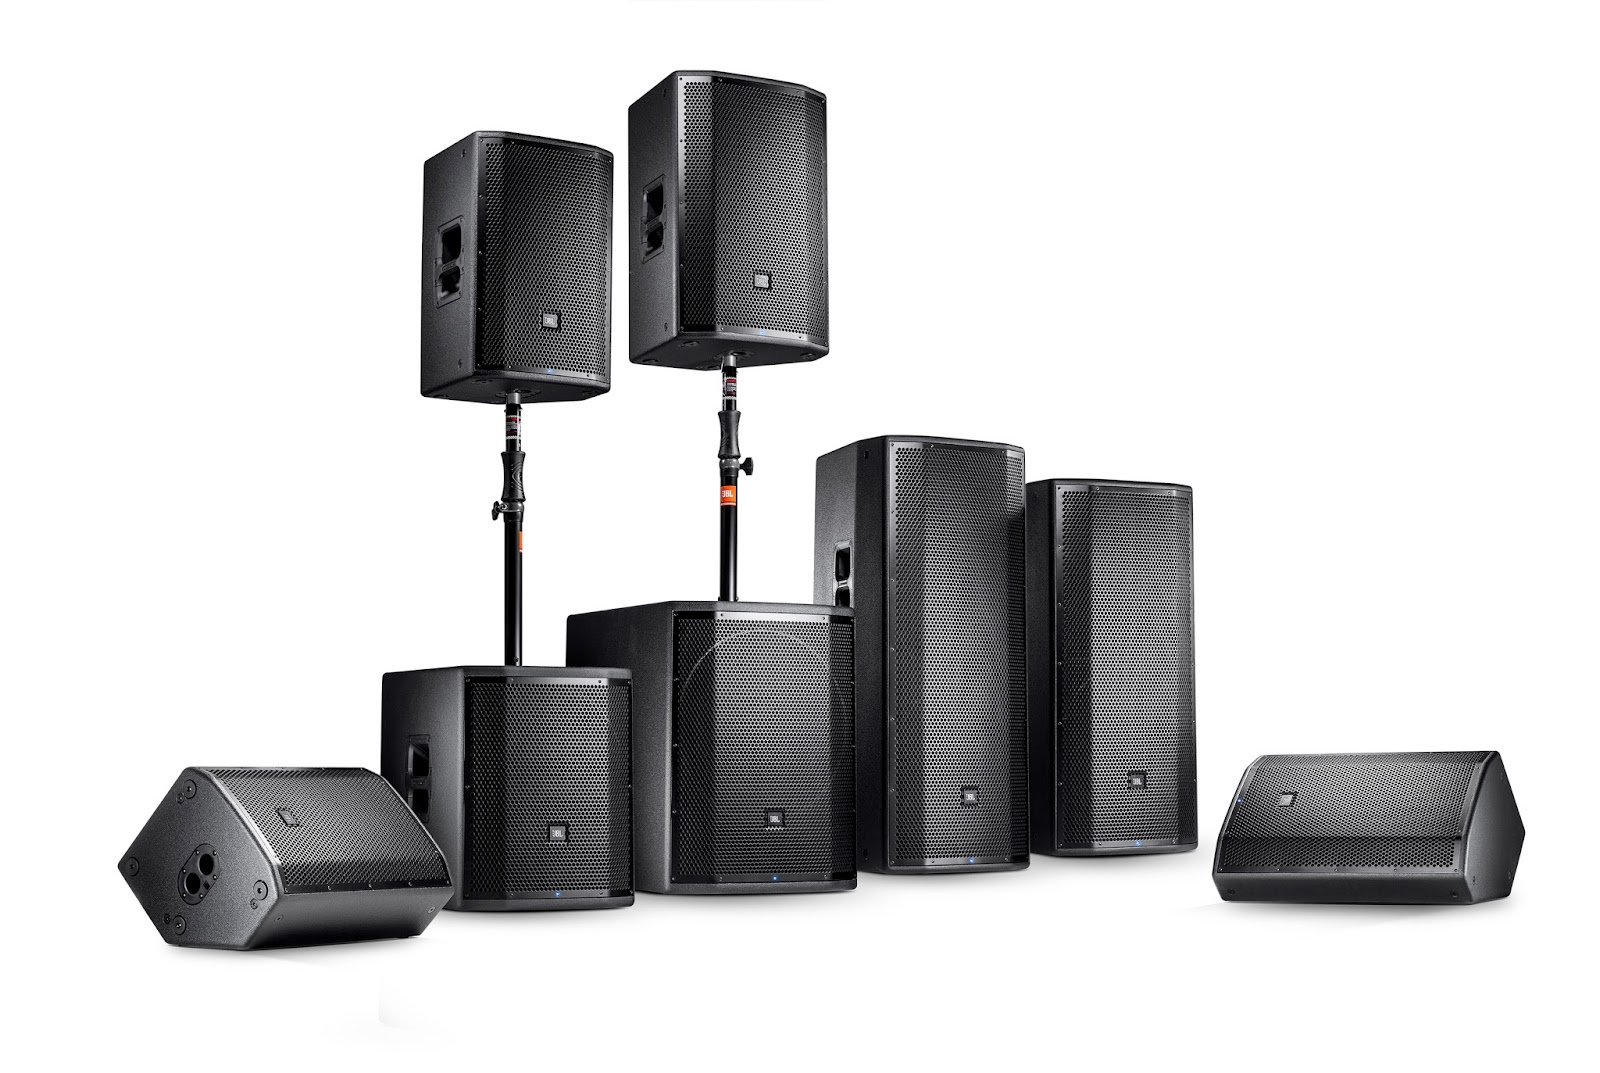 jbl professional by harman introduces the prx800w high. Black Bedroom Furniture Sets. Home Design Ideas